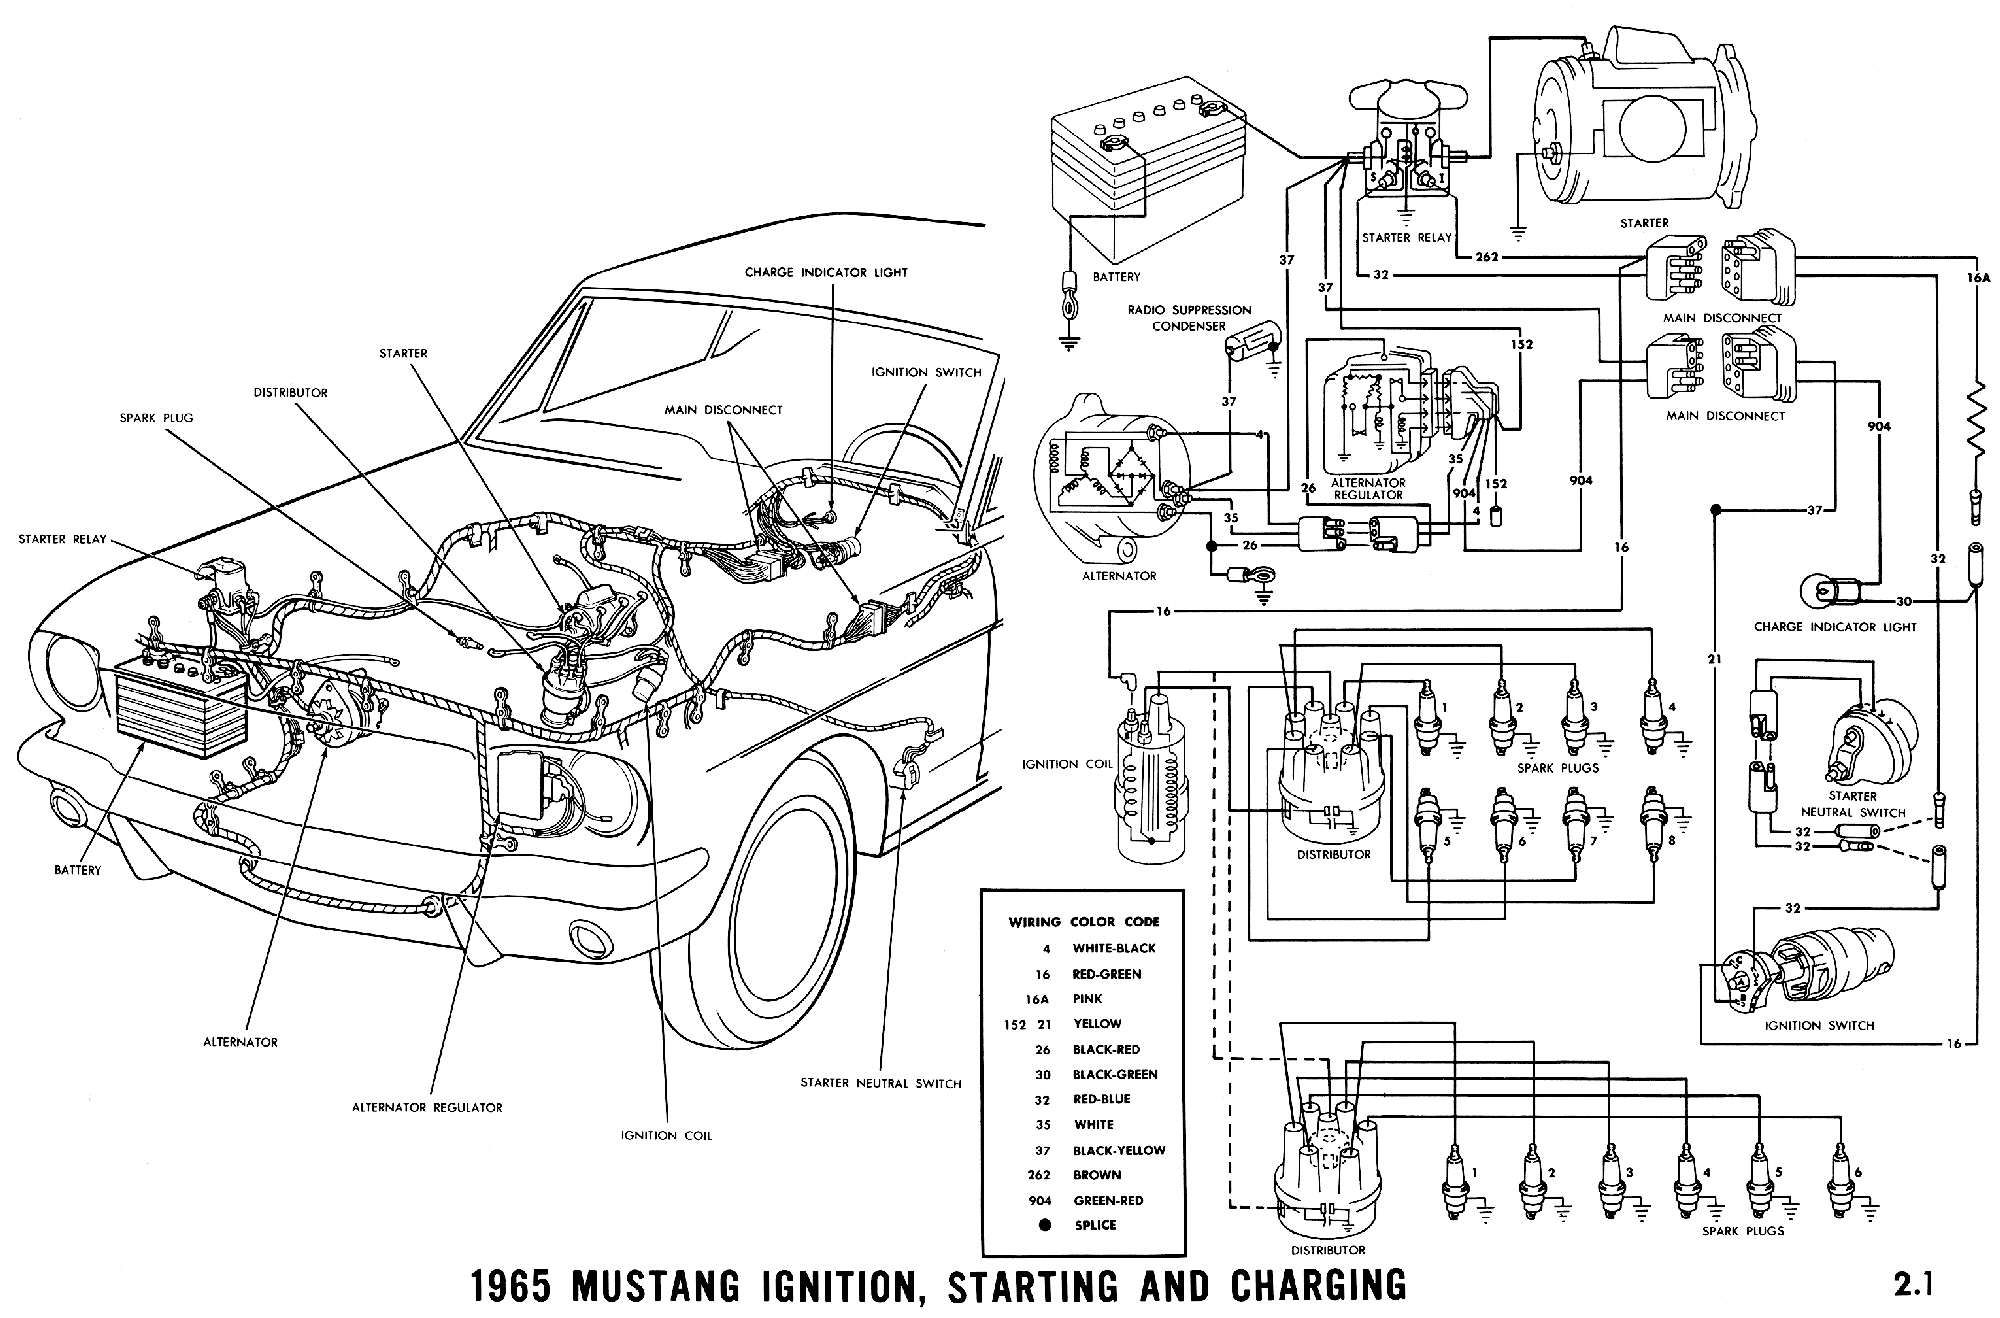 [DIAGRAM_38EU]  64A500 Alternator Wiring Diagram 66 Mustang | Wiring Resources | 1966 Mustang Alternator Wiring Diagram |  | Wiring Resources